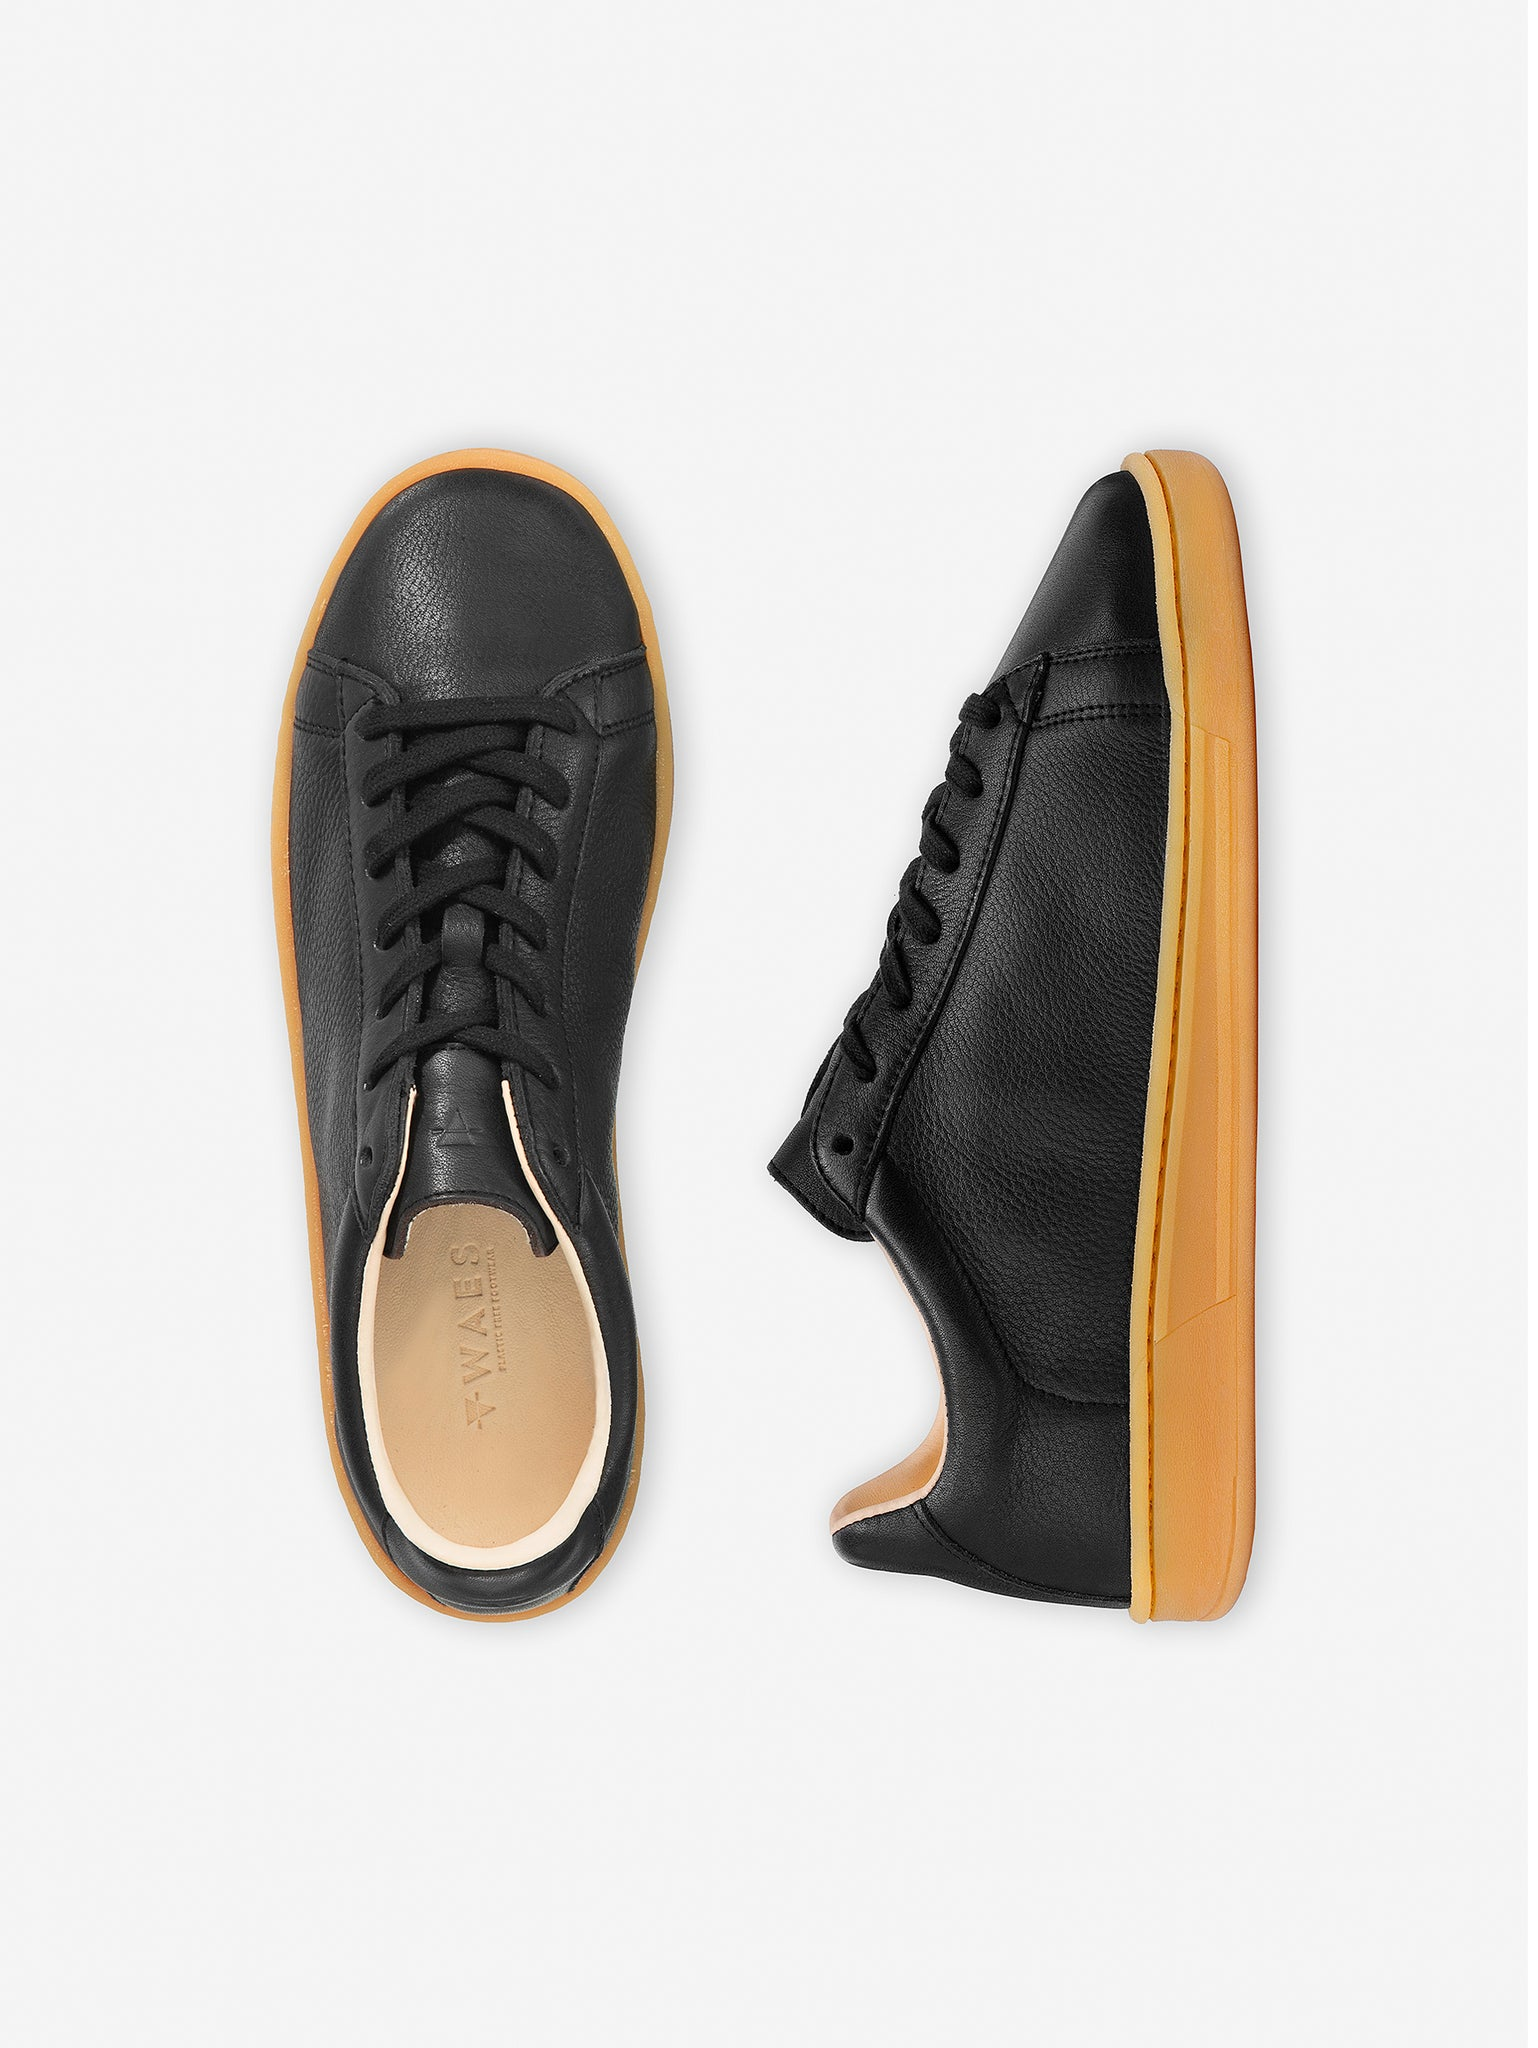 1970 - Black/Lite Leather Trainer